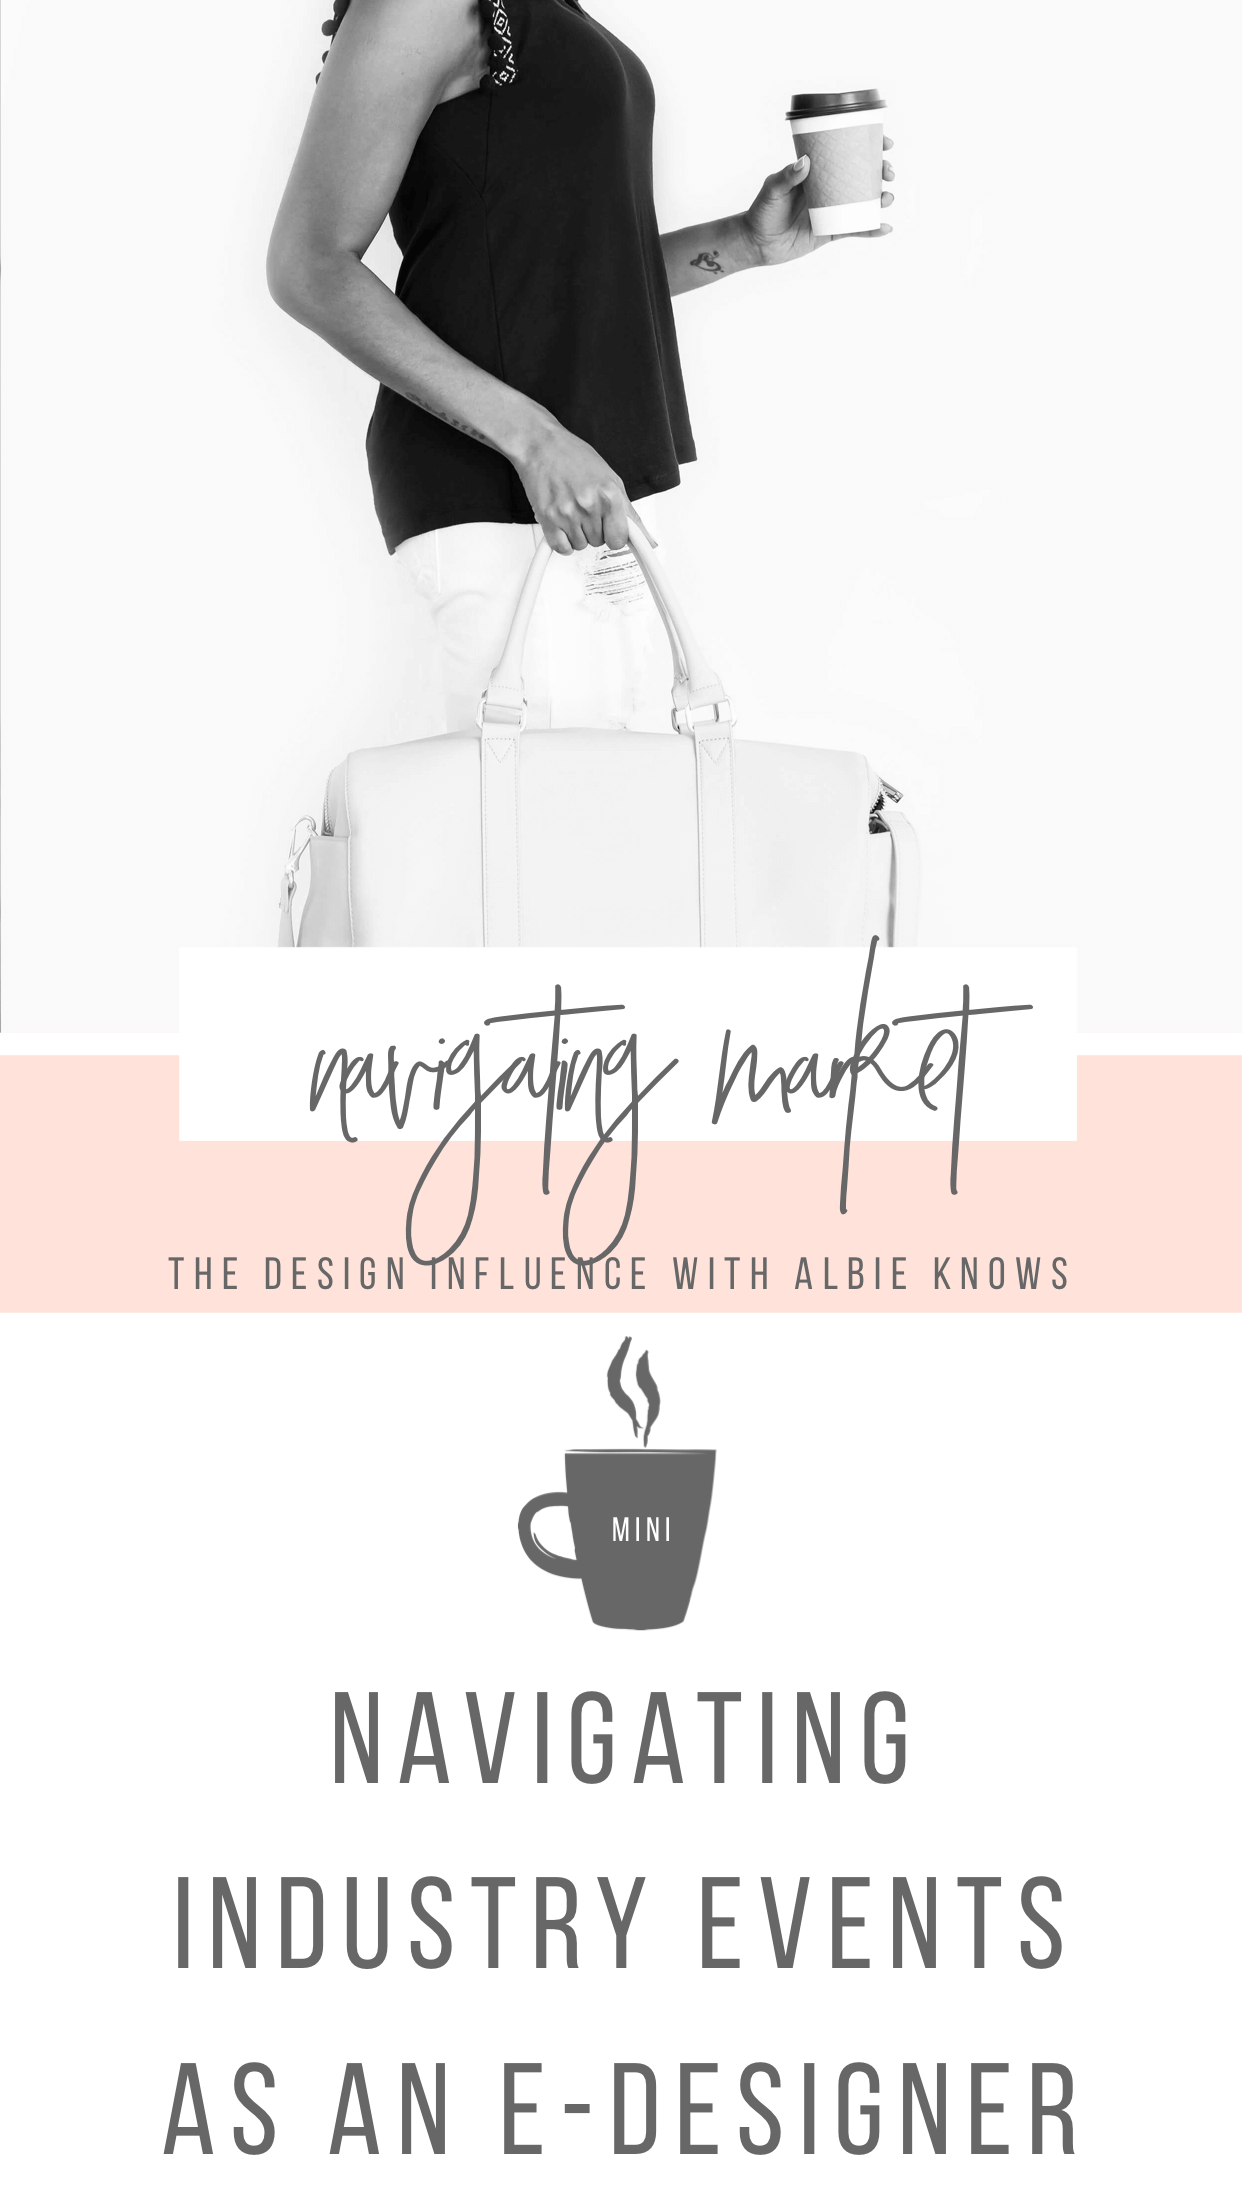 Minisode 001: Navigating Market (And Other Industry Events) As An E-Designer 2.png